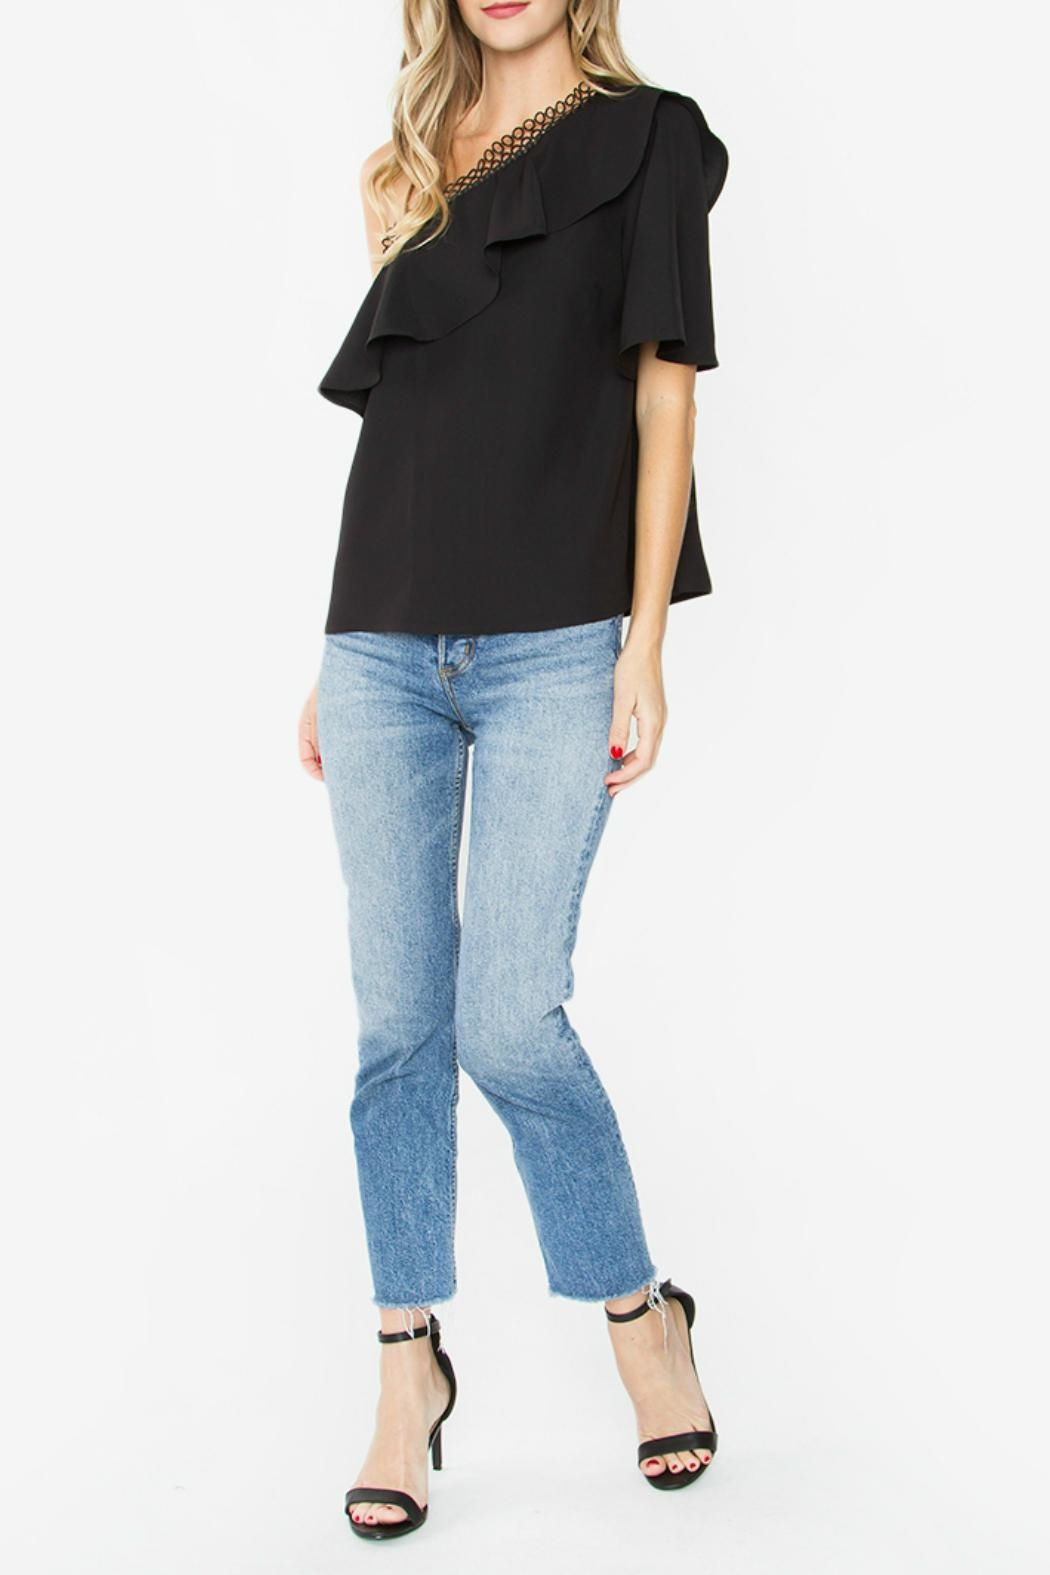 Sugar Lips Black One-Shoulder Top - Side Cropped Image